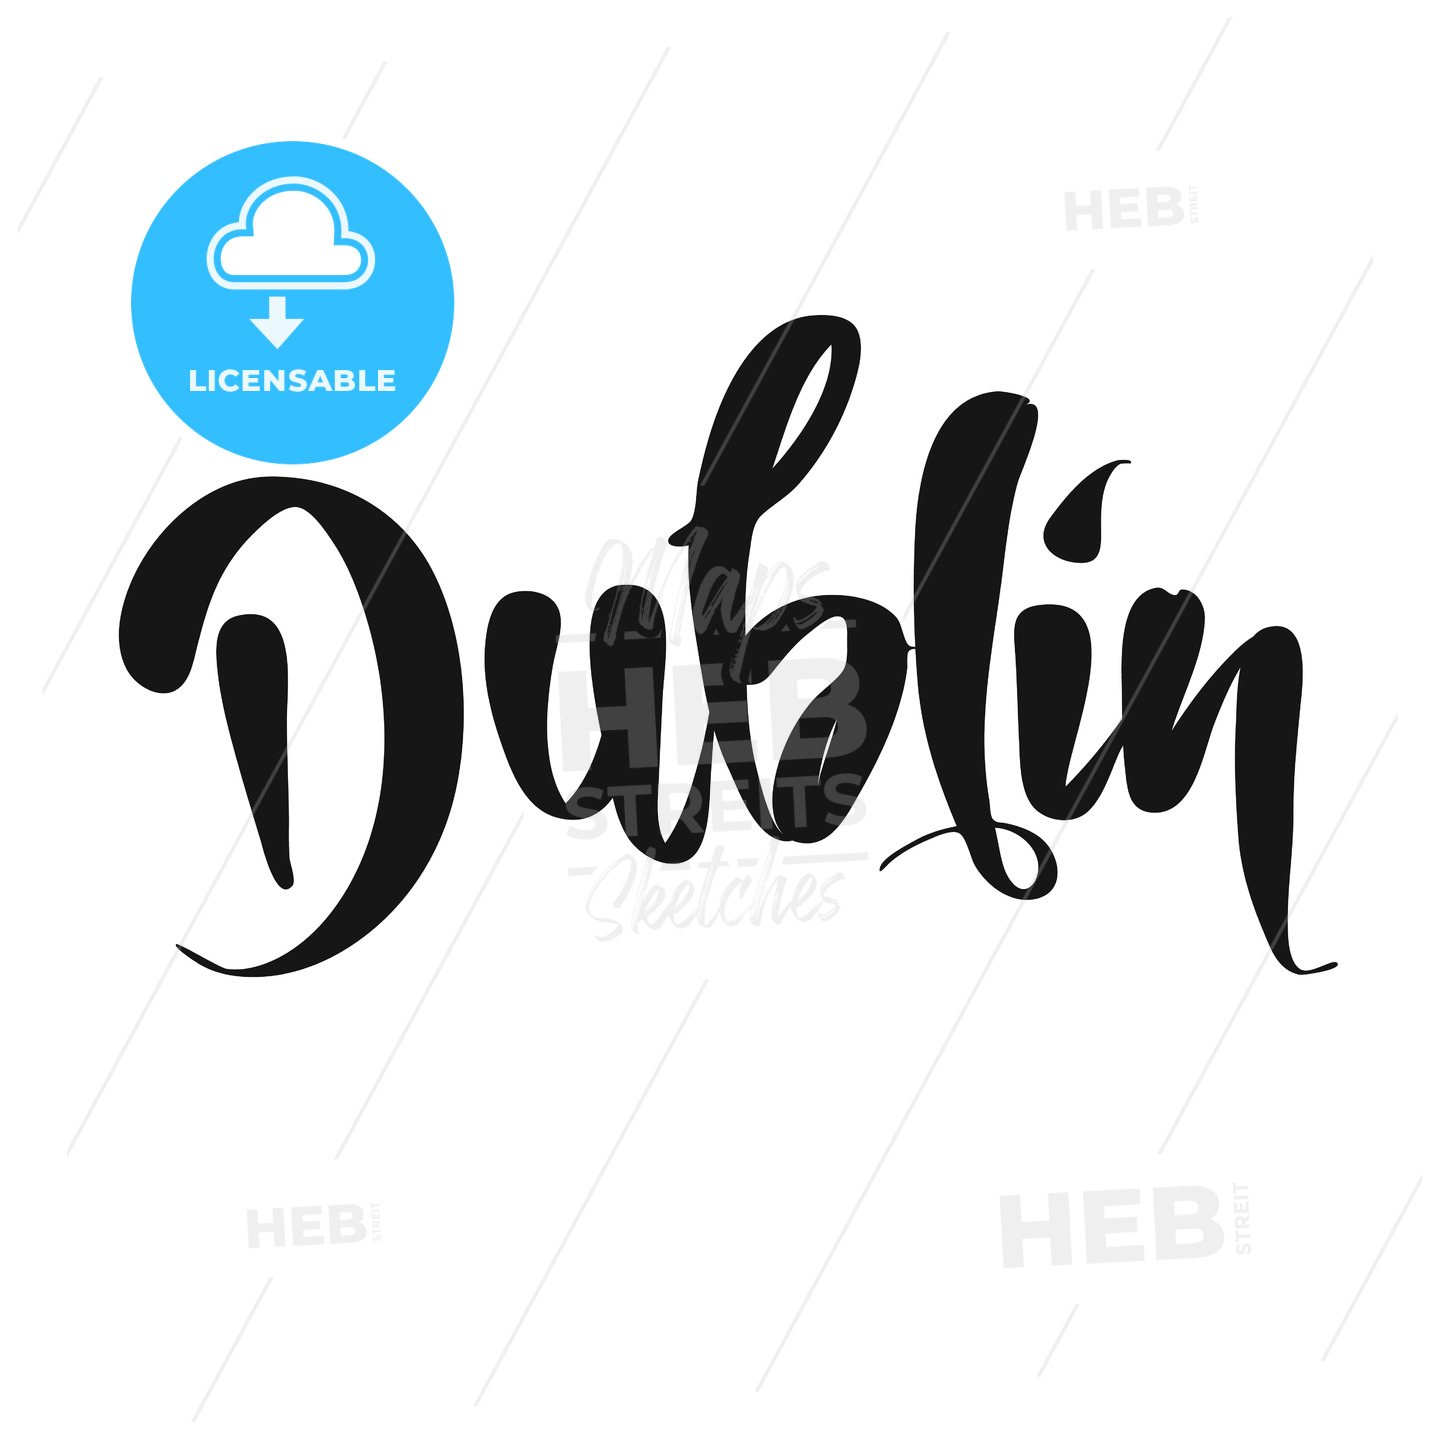 Dublin calligraphic Lettering - Hebstreits